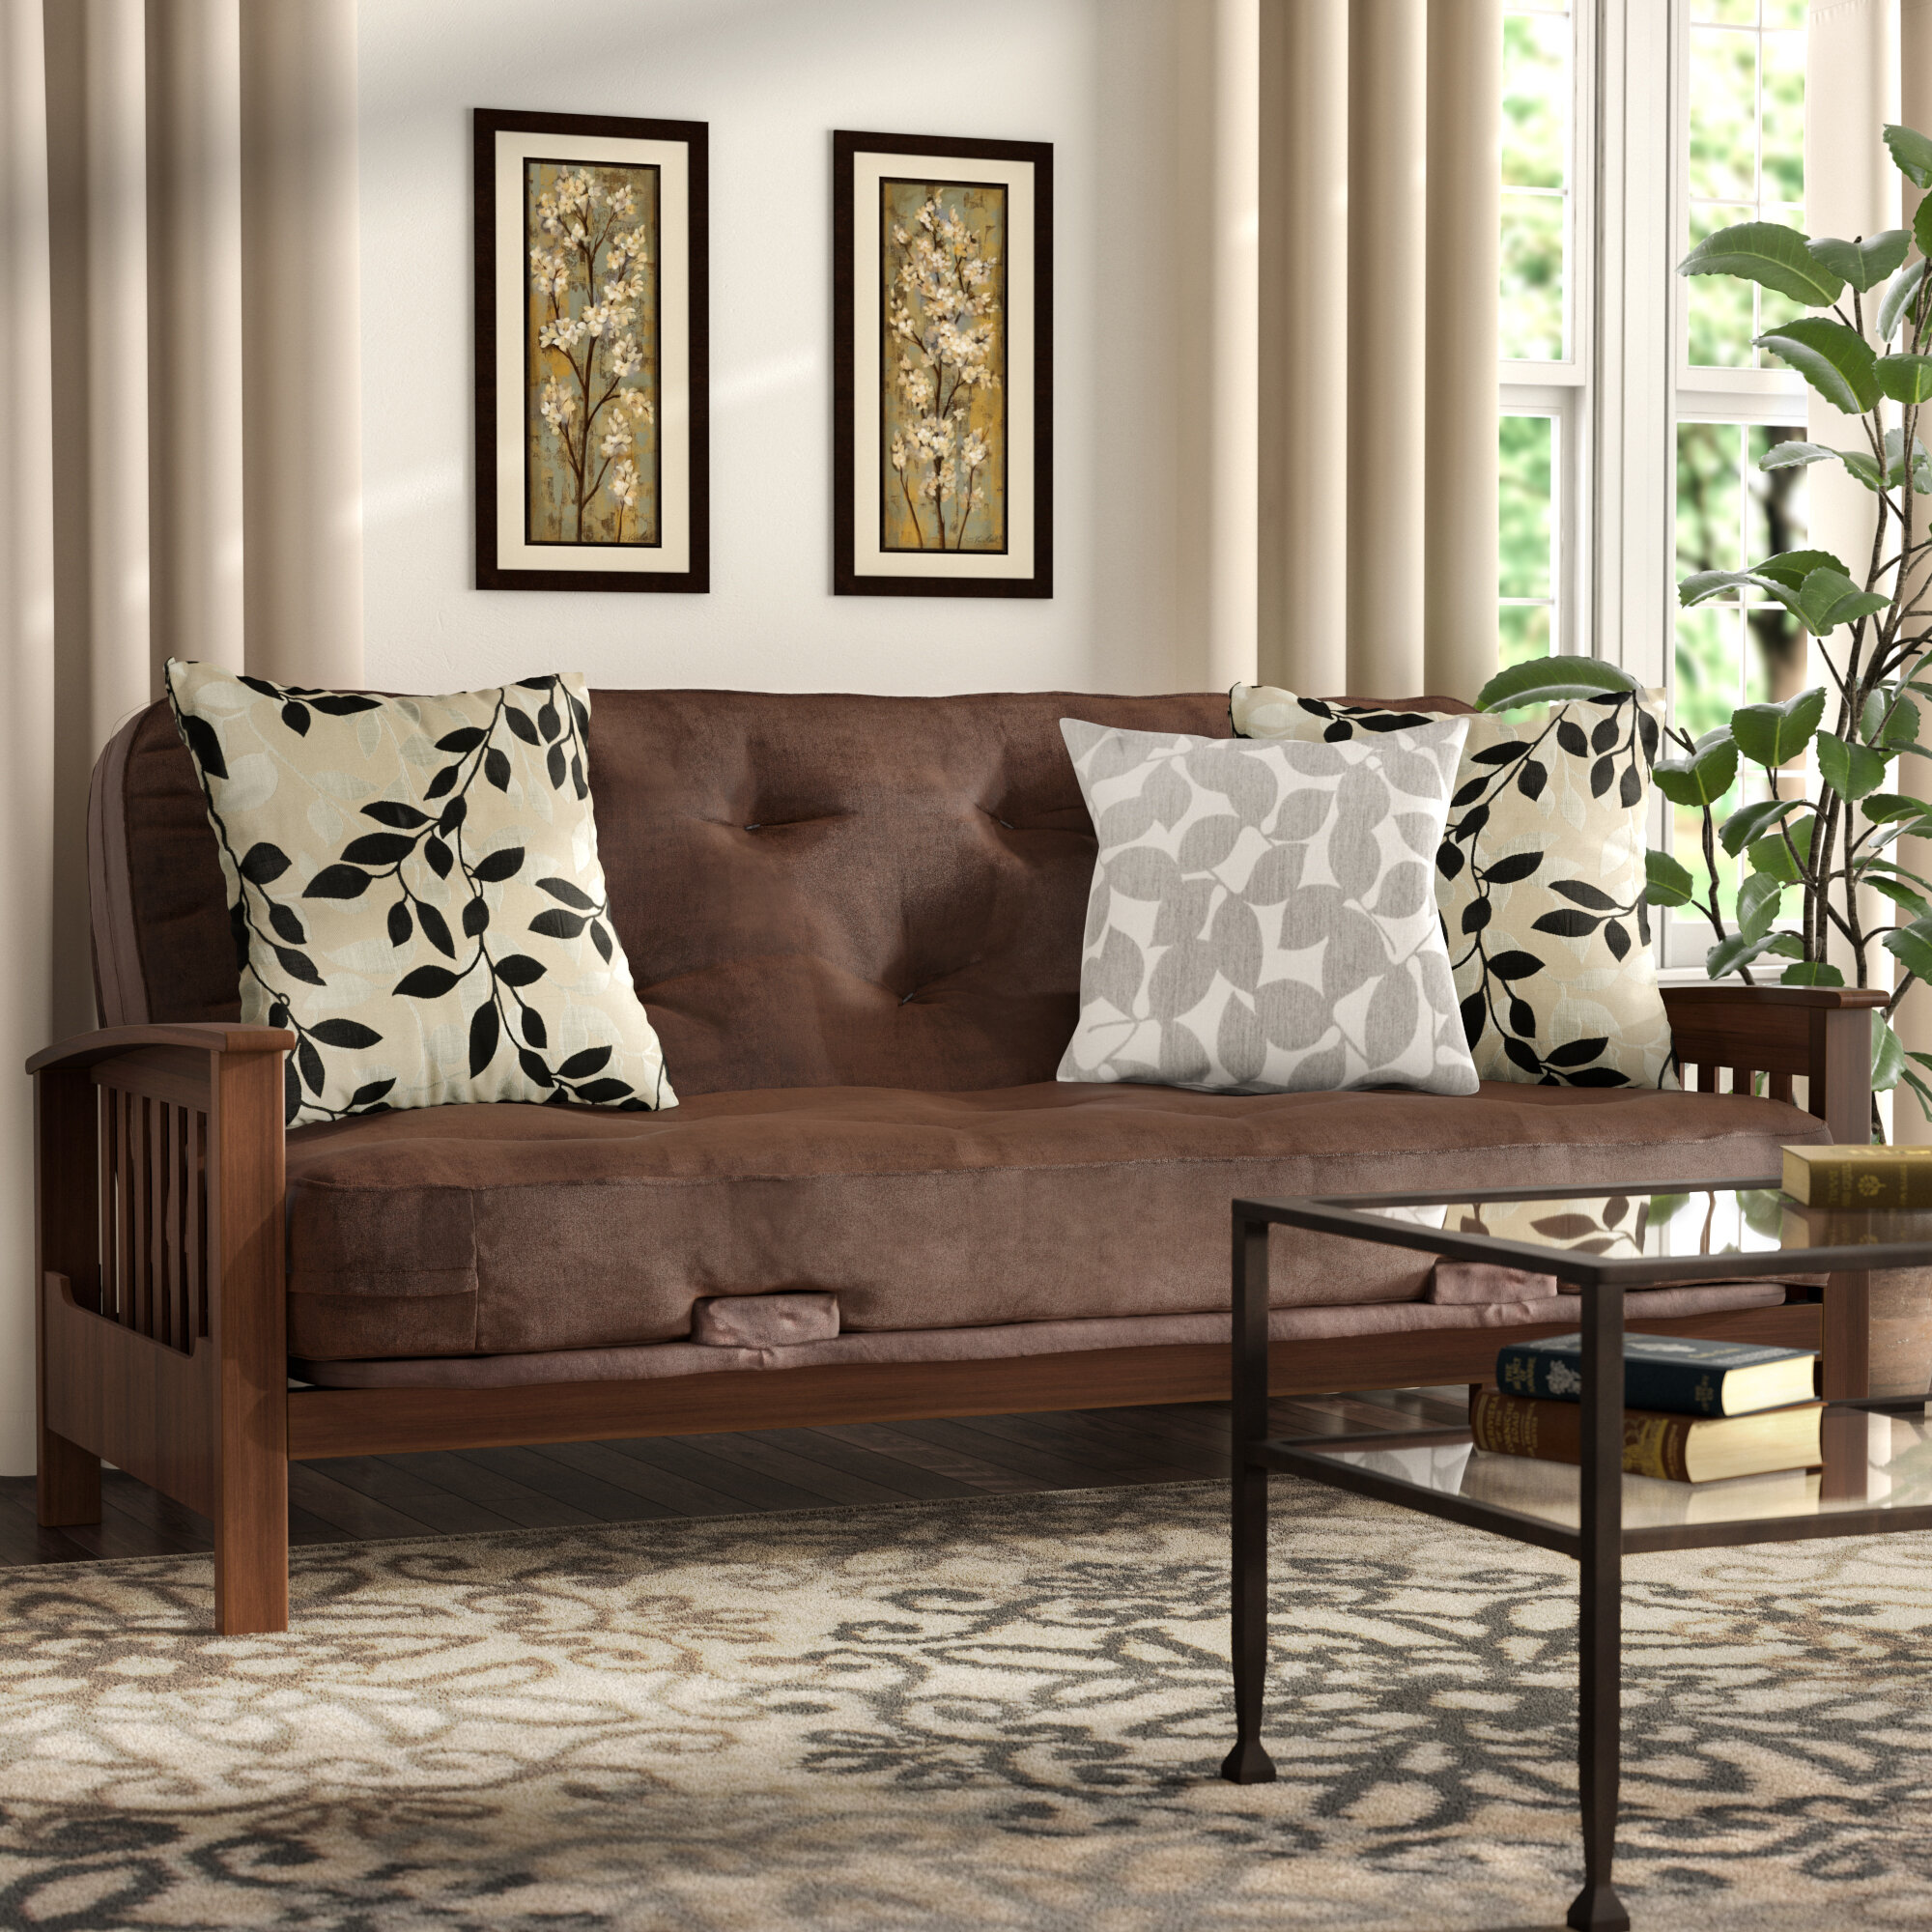 Magnificent Andover Mills Massengill Wood Arm Full Futon And Mattress Caraccident5 Cool Chair Designs And Ideas Caraccident5Info